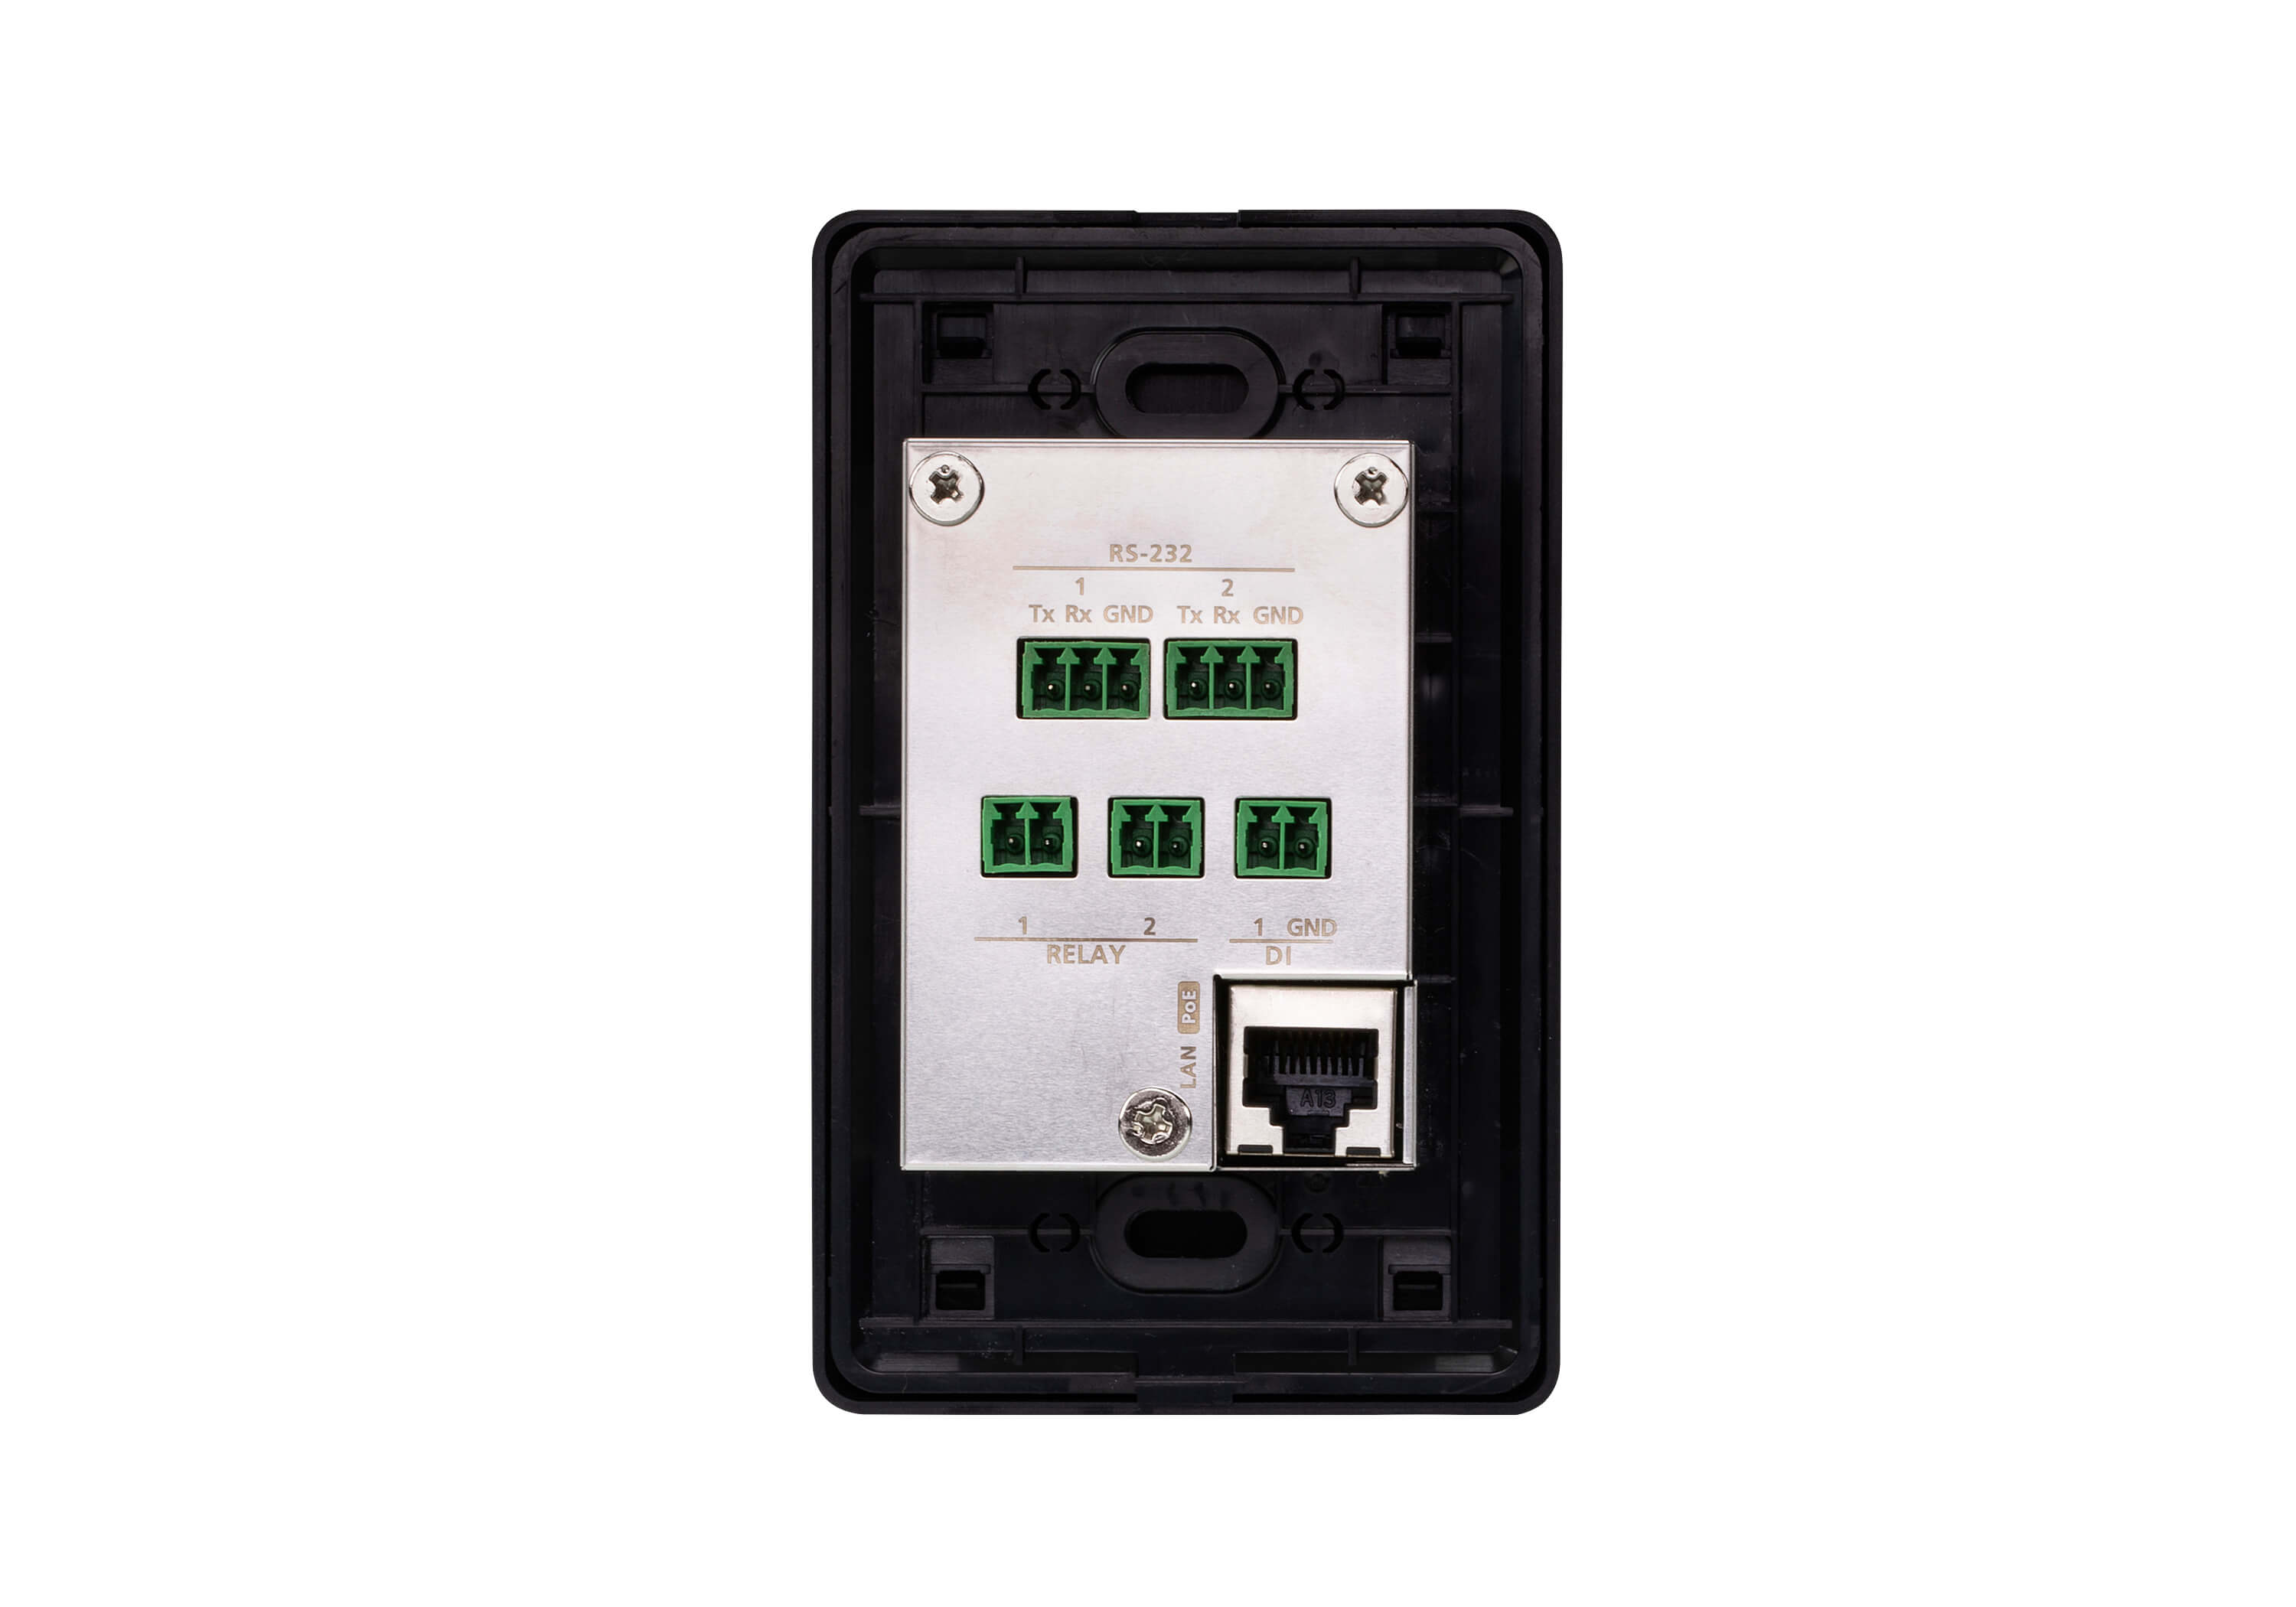 ATEN Control System - 8-button Control Pad (US, 1 Gang)-5